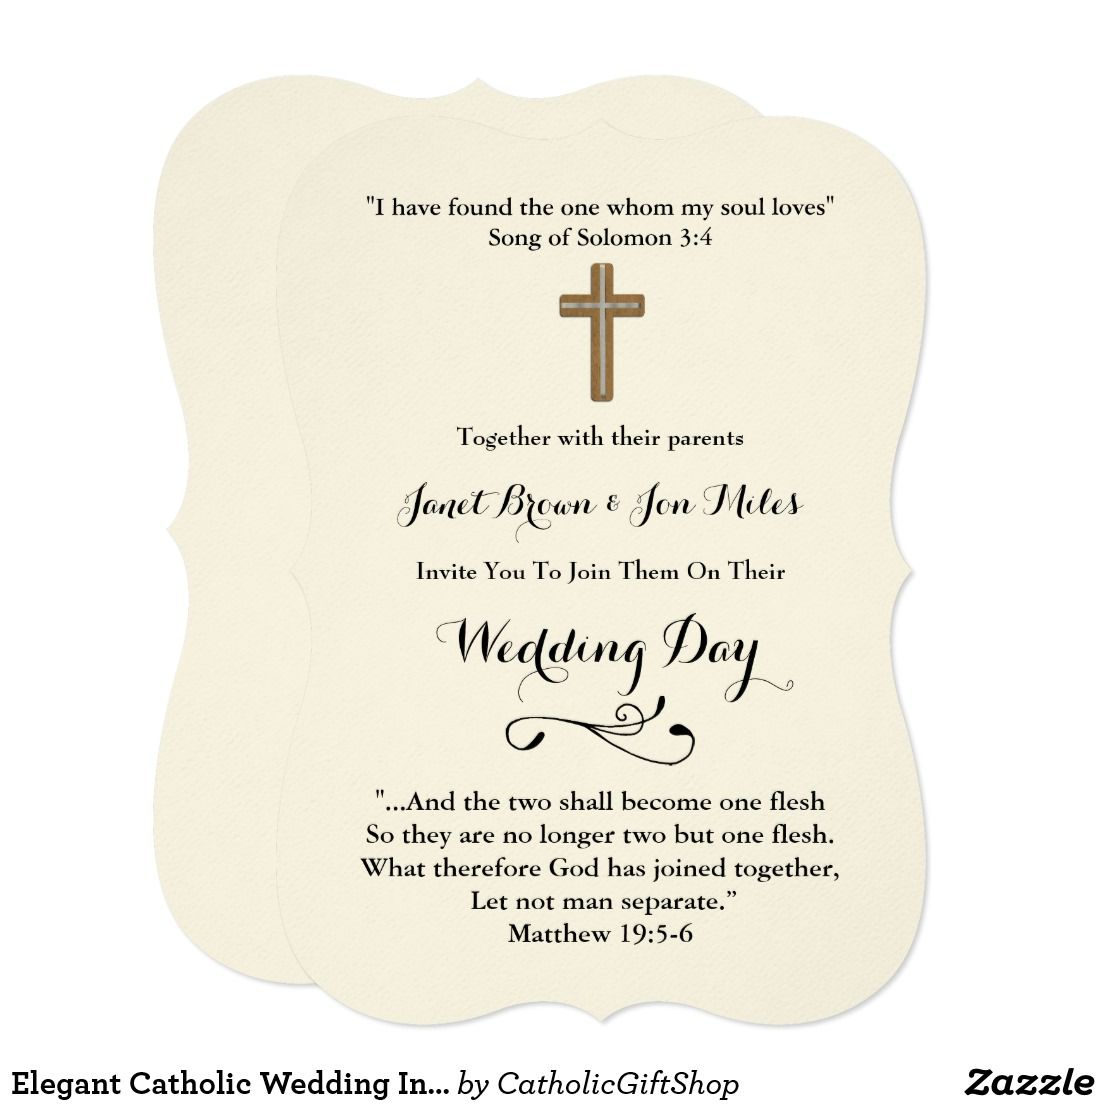 Elegant Catholic Wedding Invites With Verses